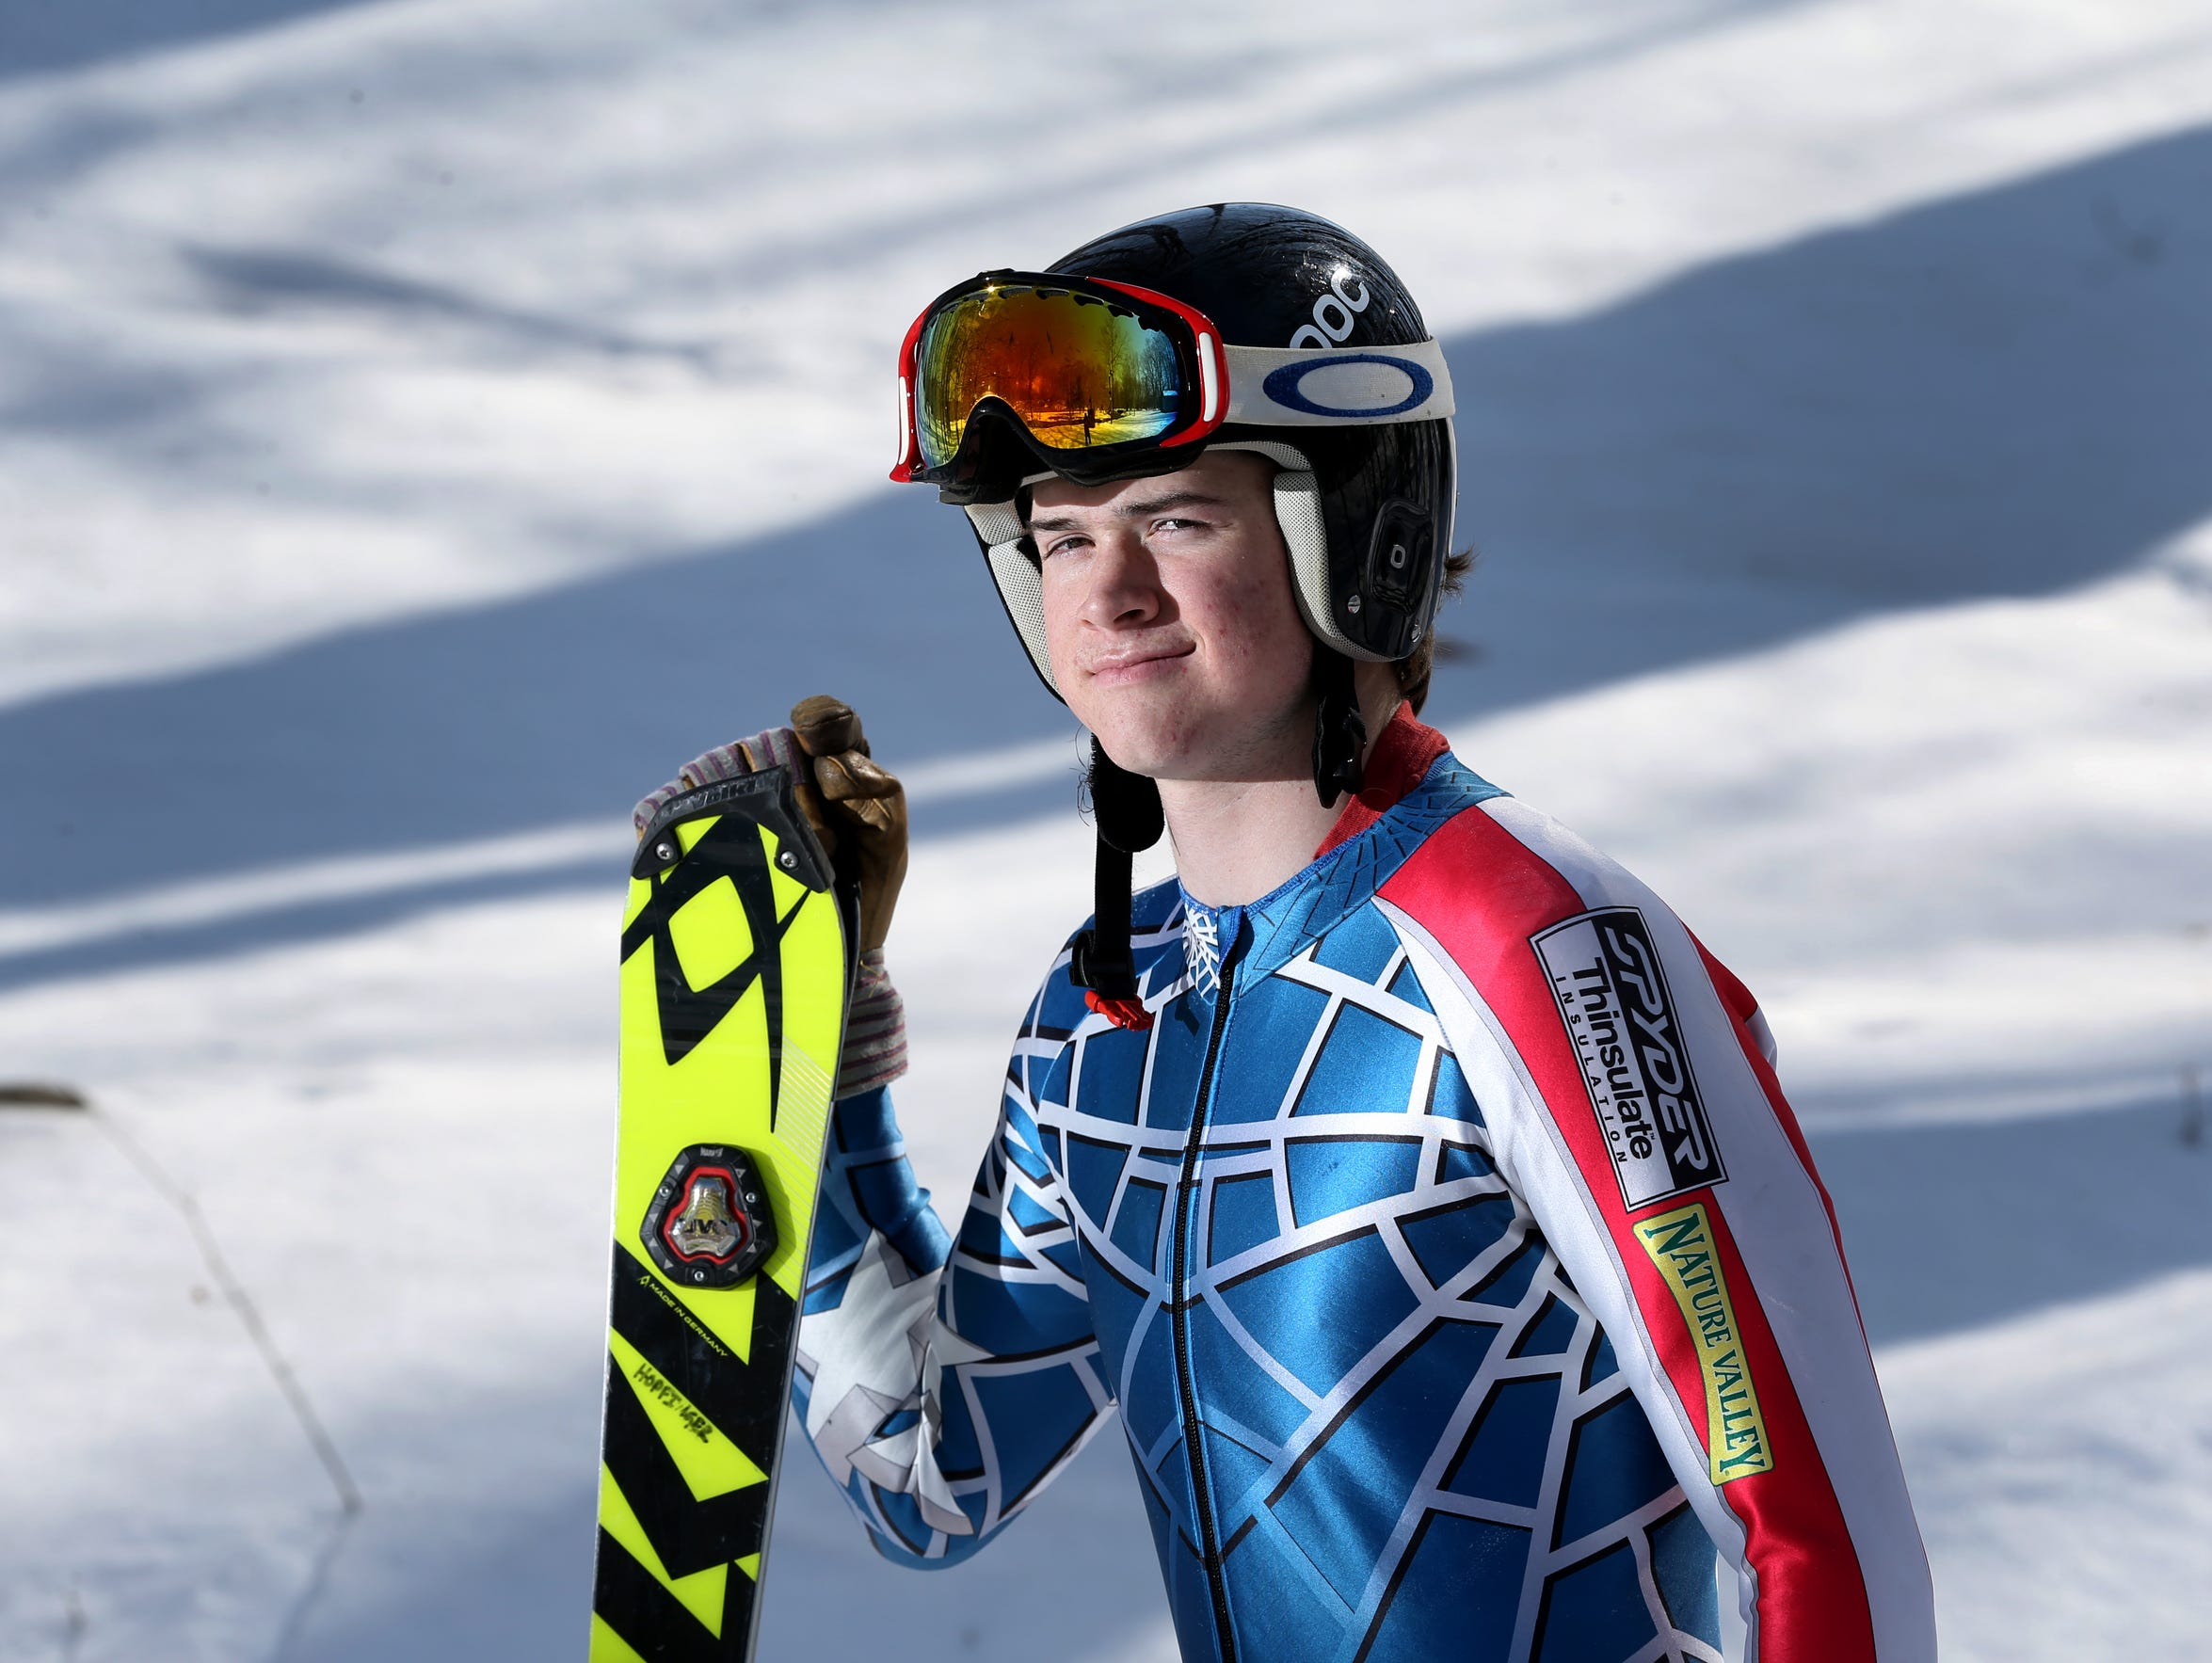 AGR Alpine Skier of the Year, Pittsford's Max Hopfinger,